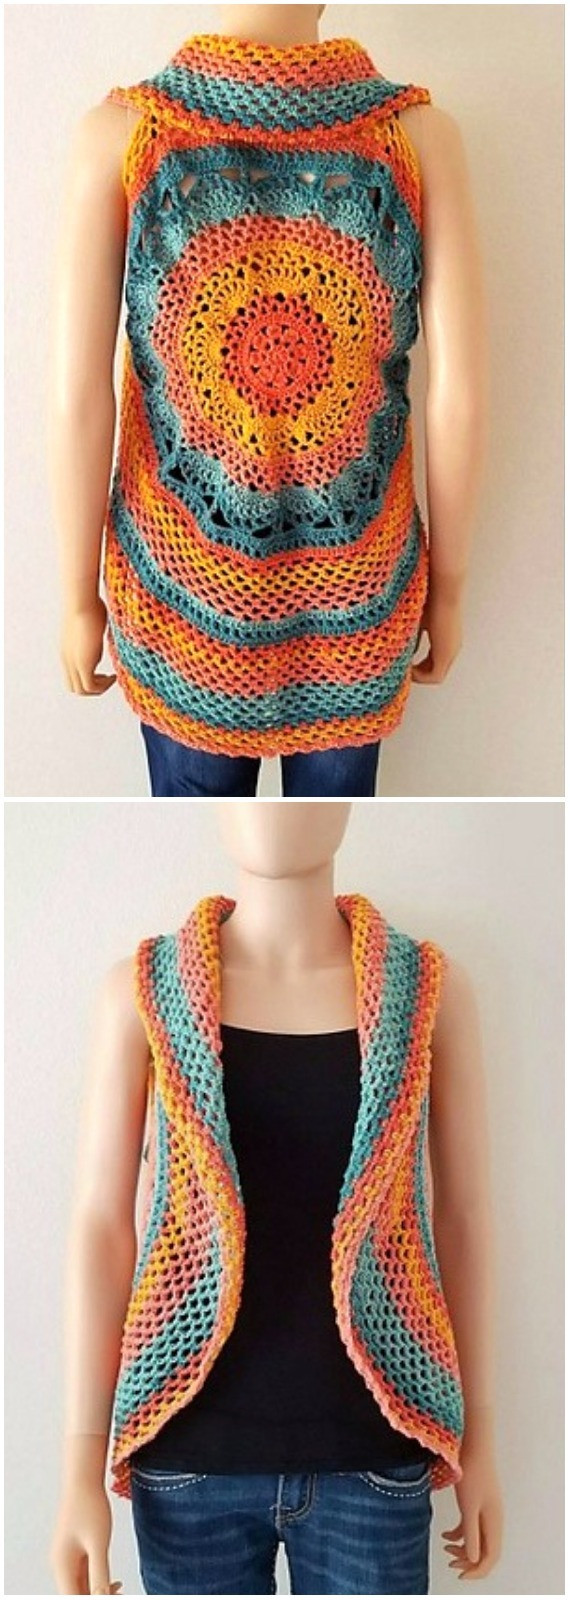 Beautiful Diy Crochet Circular Vest Sweater Jacket Free Patterns Crochet Circular Vest Of Delightful 46 Models Crochet Circular Vest